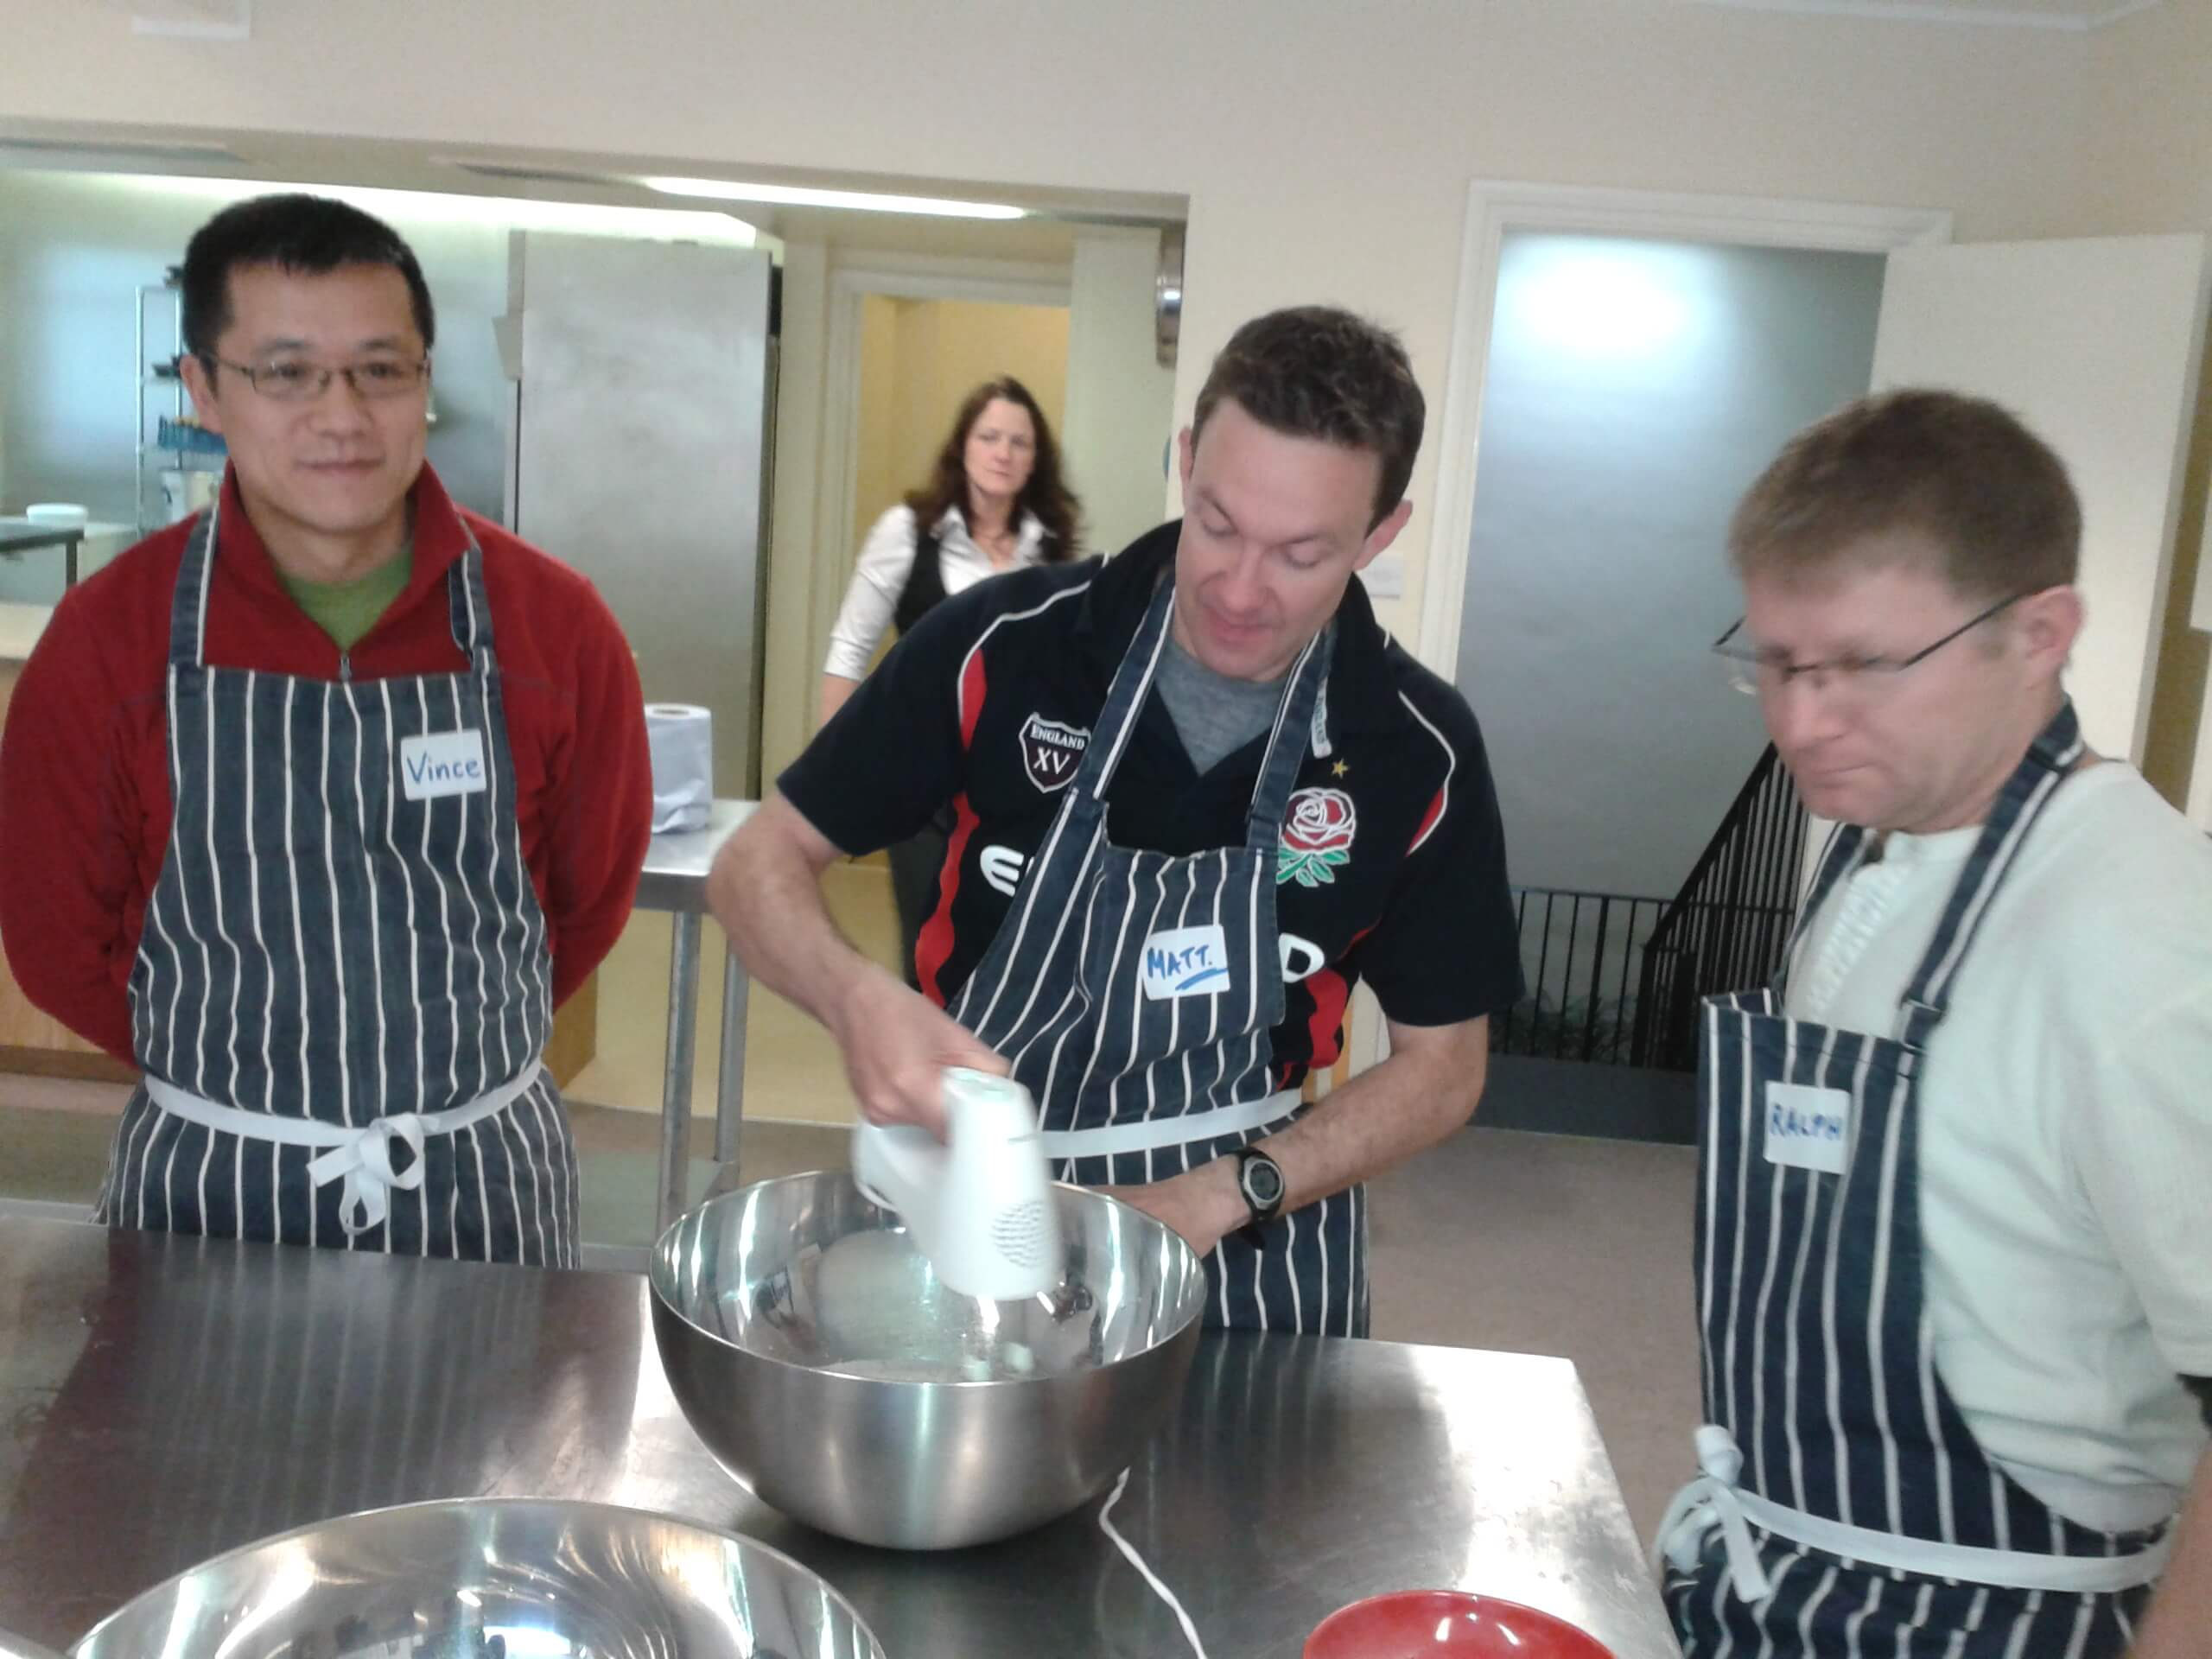 mixing chocolate torte during cooking class brighton